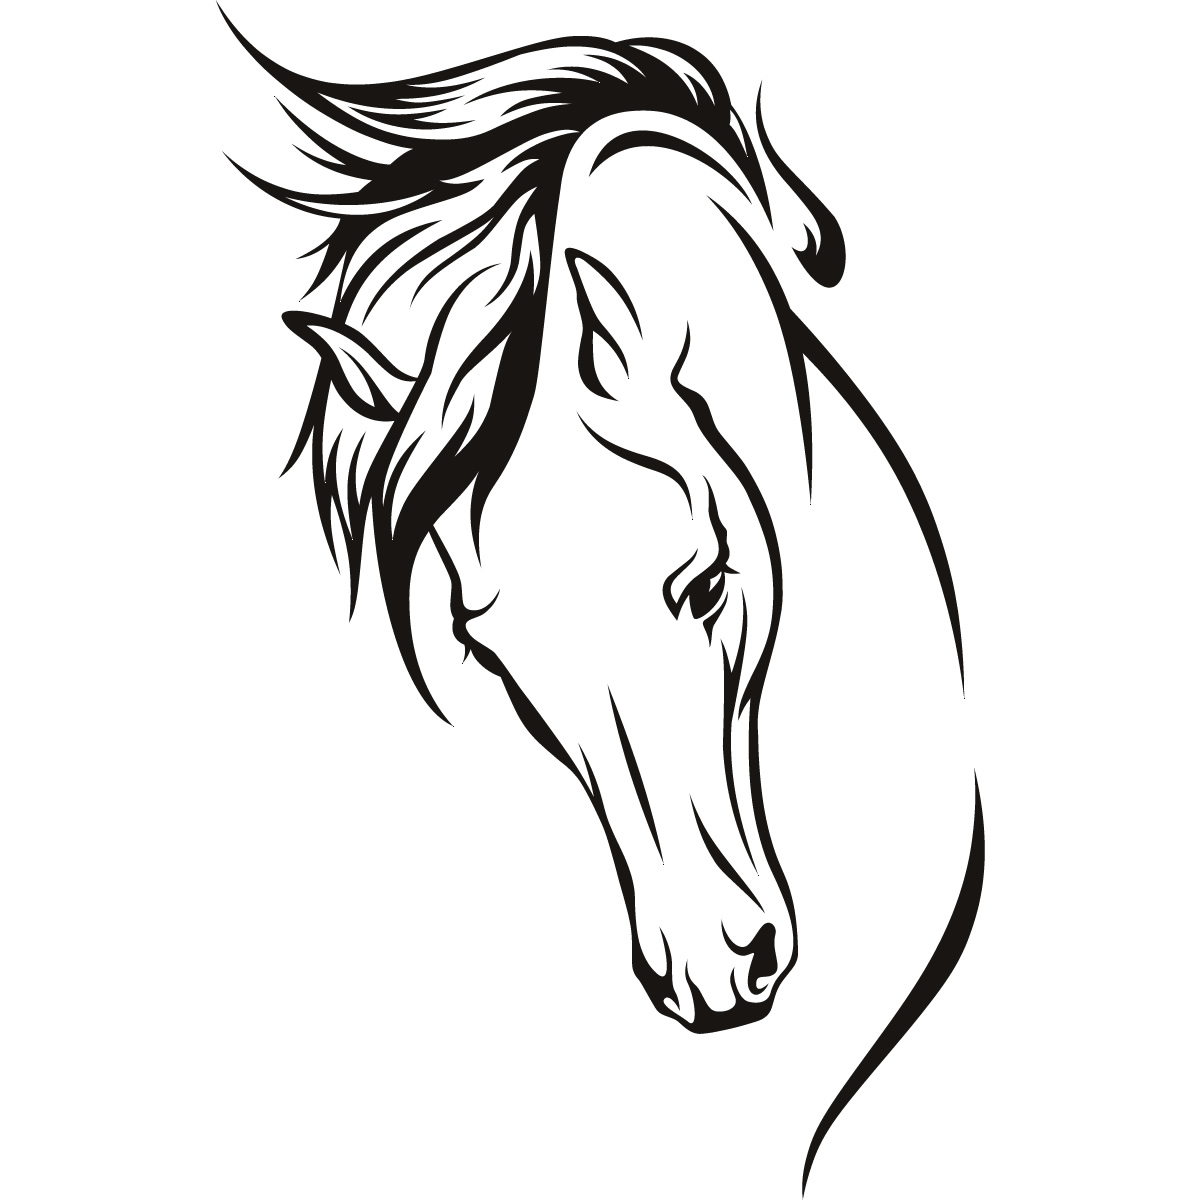 1200x1200 Simple Horse Head Drawing Easy horse drawings Simple Horse Head